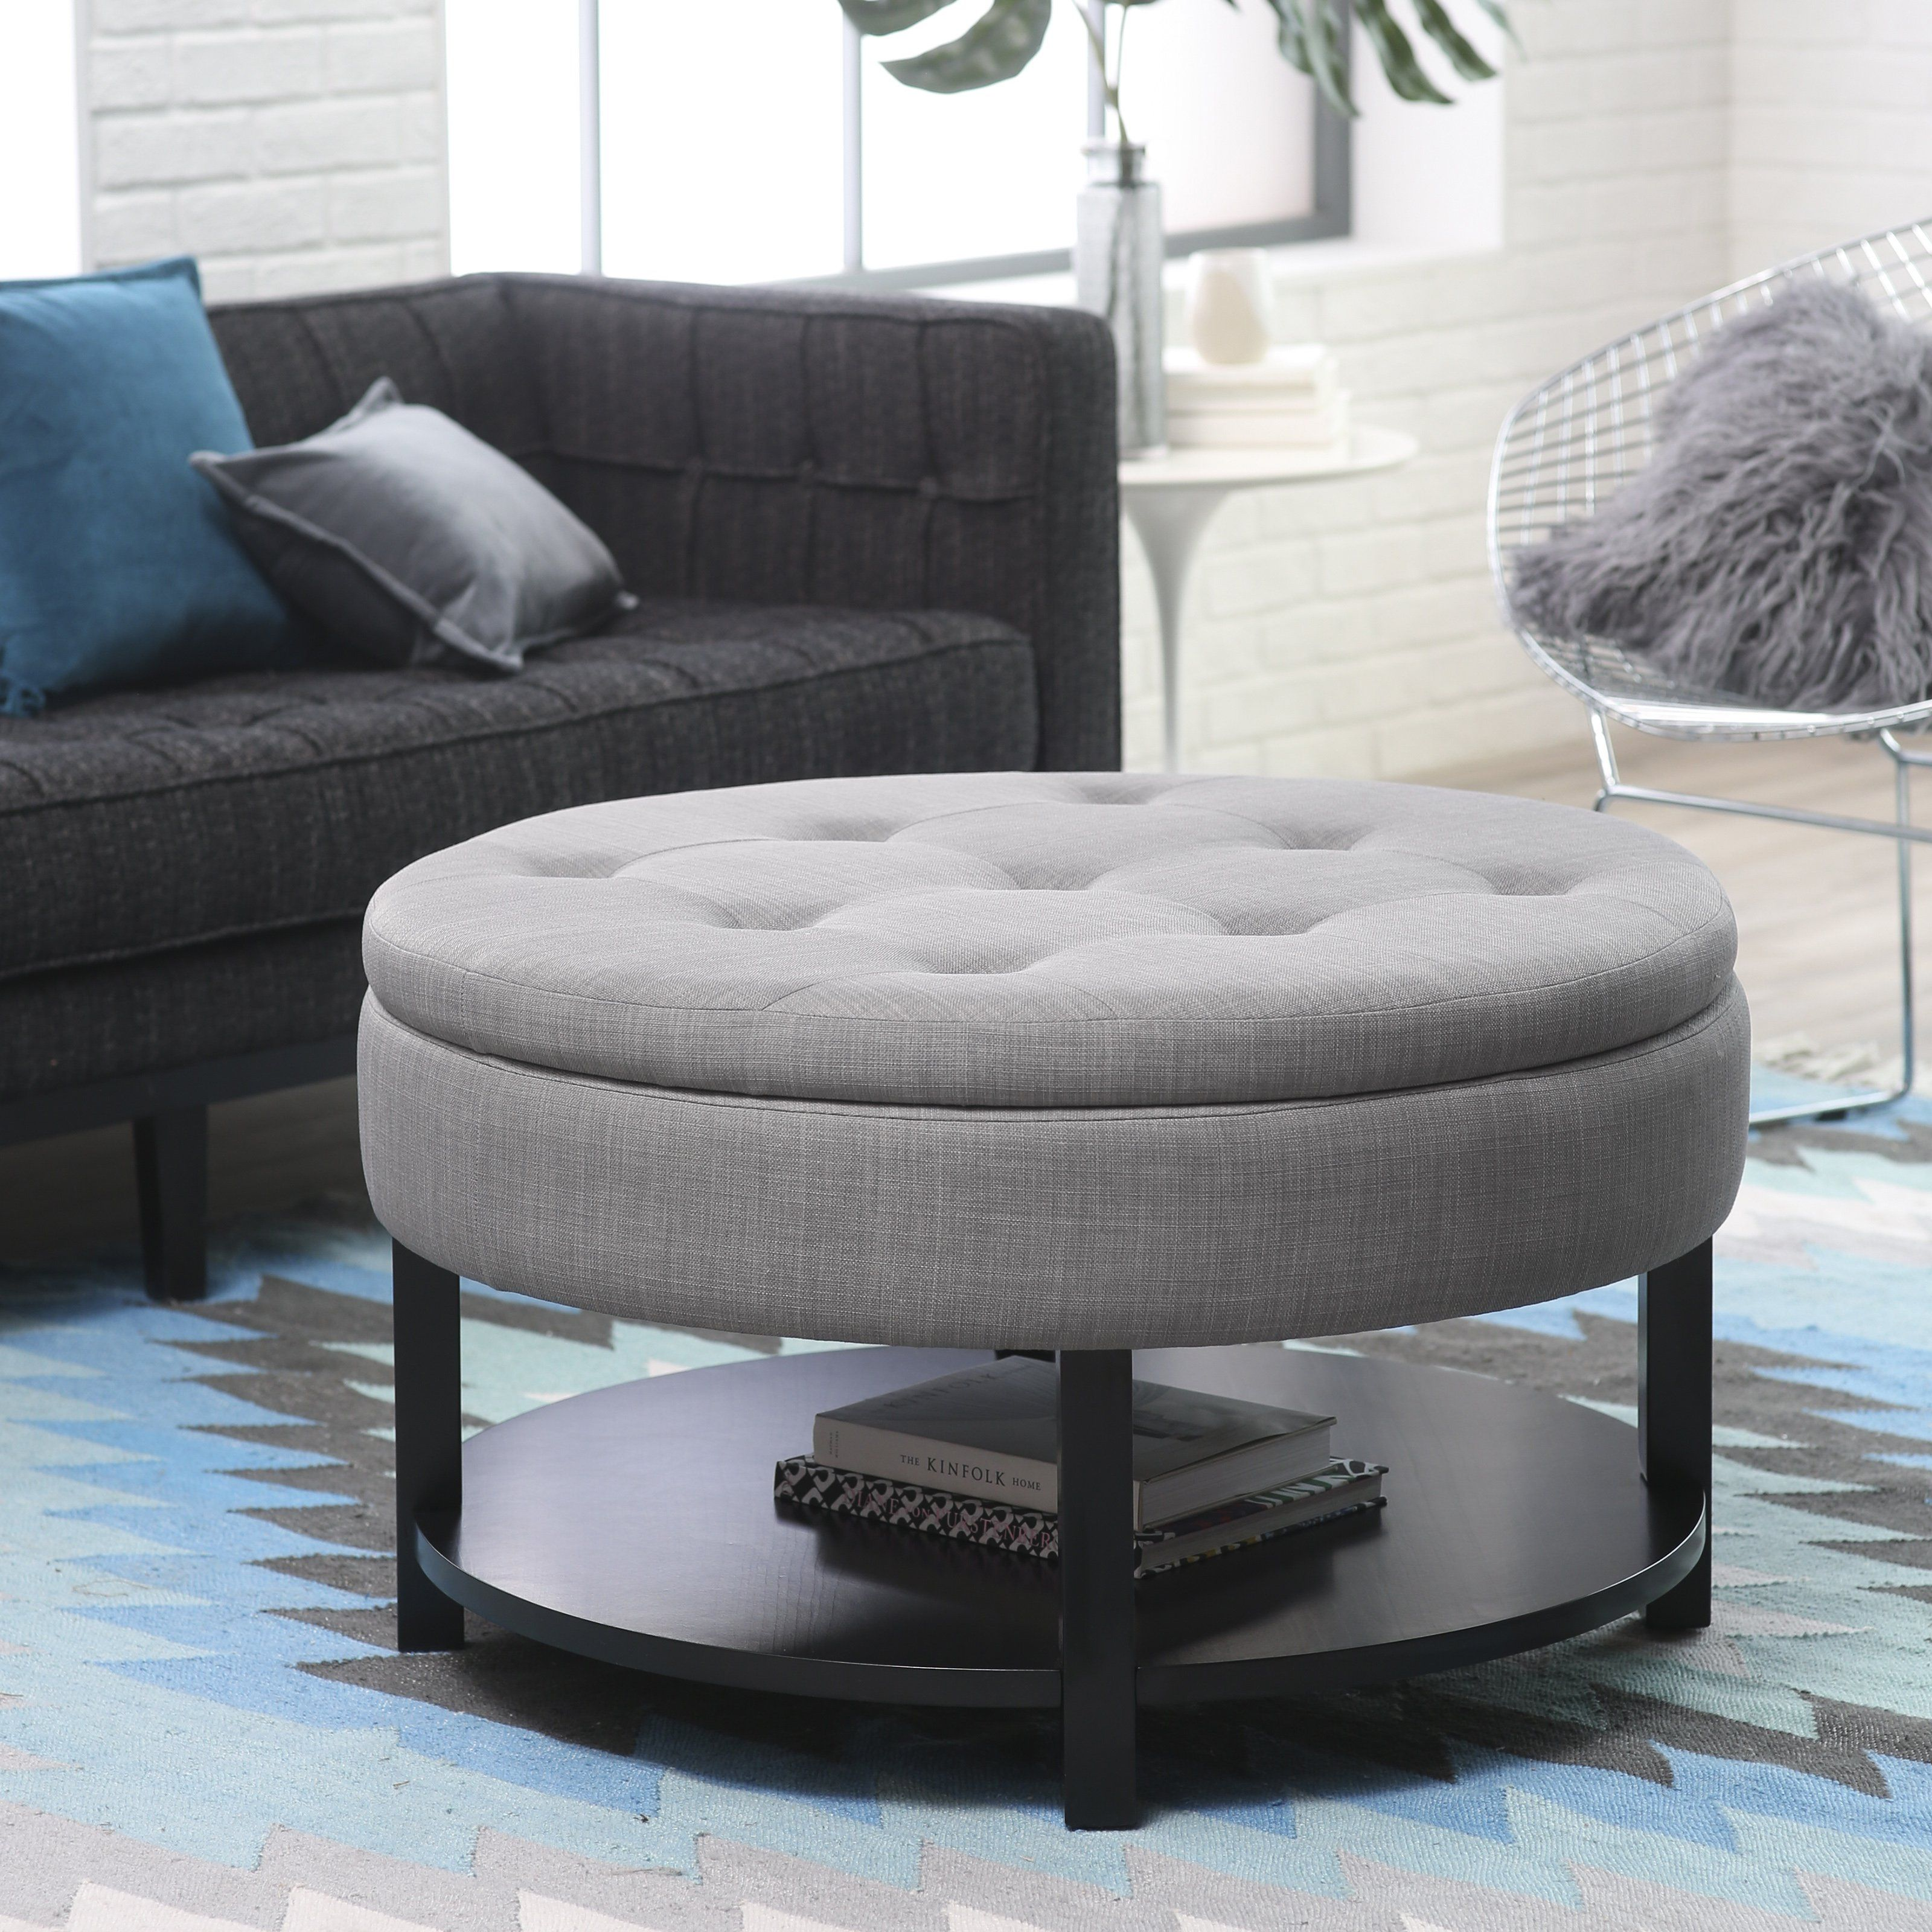 Belham Living Dalton Coffee Table Storage Ottoman with Tray Shelf